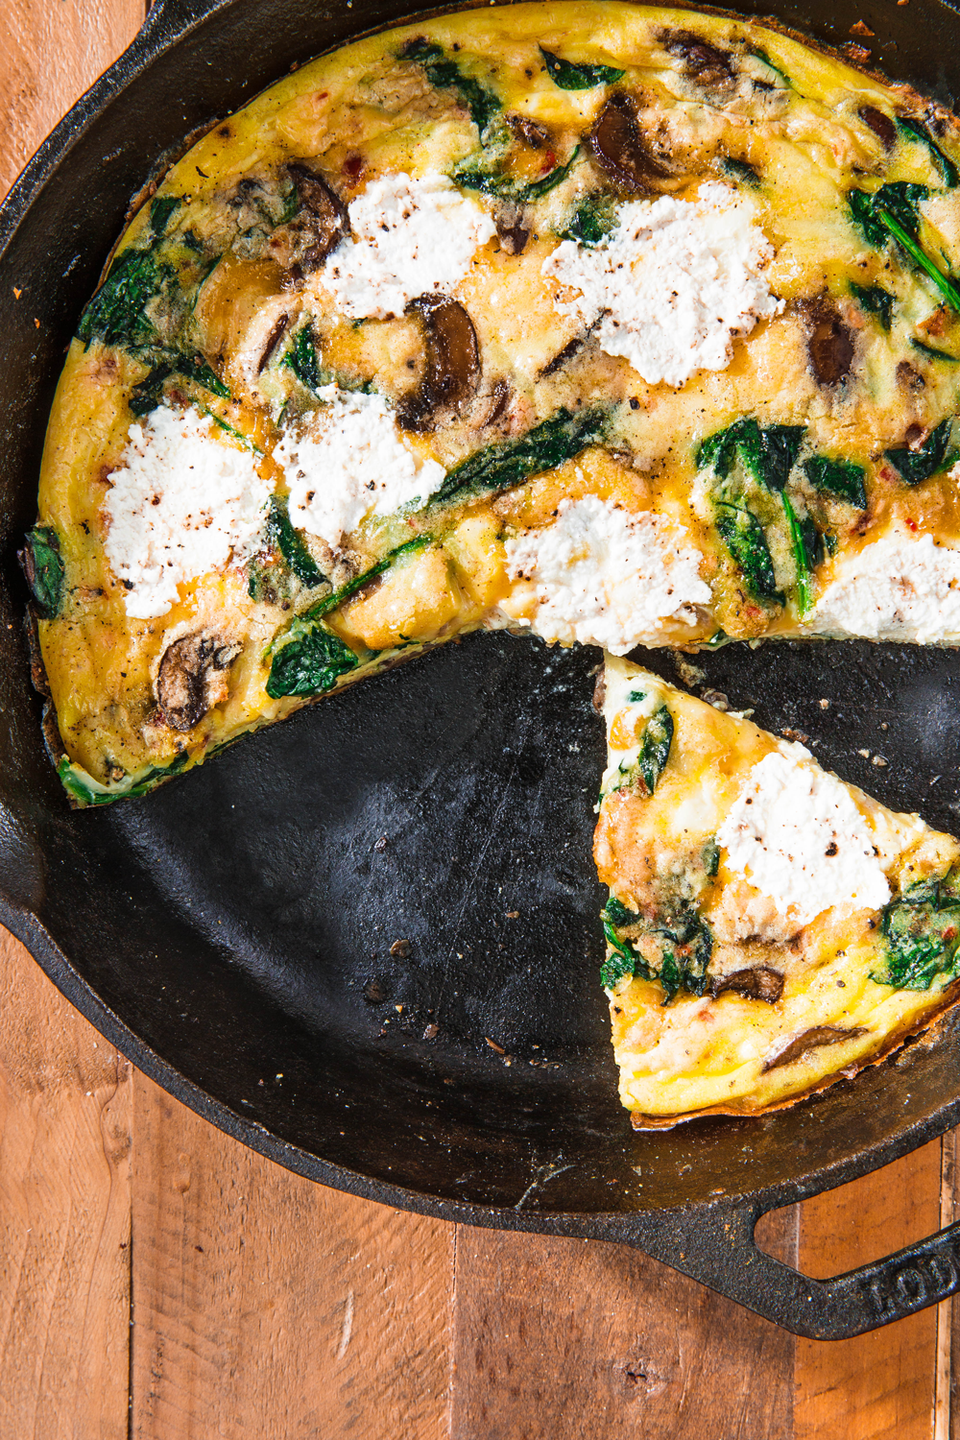 "<p>A slice of this, some fruit, and a cup of coffee (or tea). You won Mother's Day before the day's even begun!</p><p>Get the recipe from <a href=""https://www.delish.com/cooking/recipe-ideas/a24229816/frittata-recipe/"" rel=""nofollow noopener"" target=""_blank"" data-ylk=""slk:Delish"" class=""link rapid-noclick-resp"">Delish</a>. </p>"